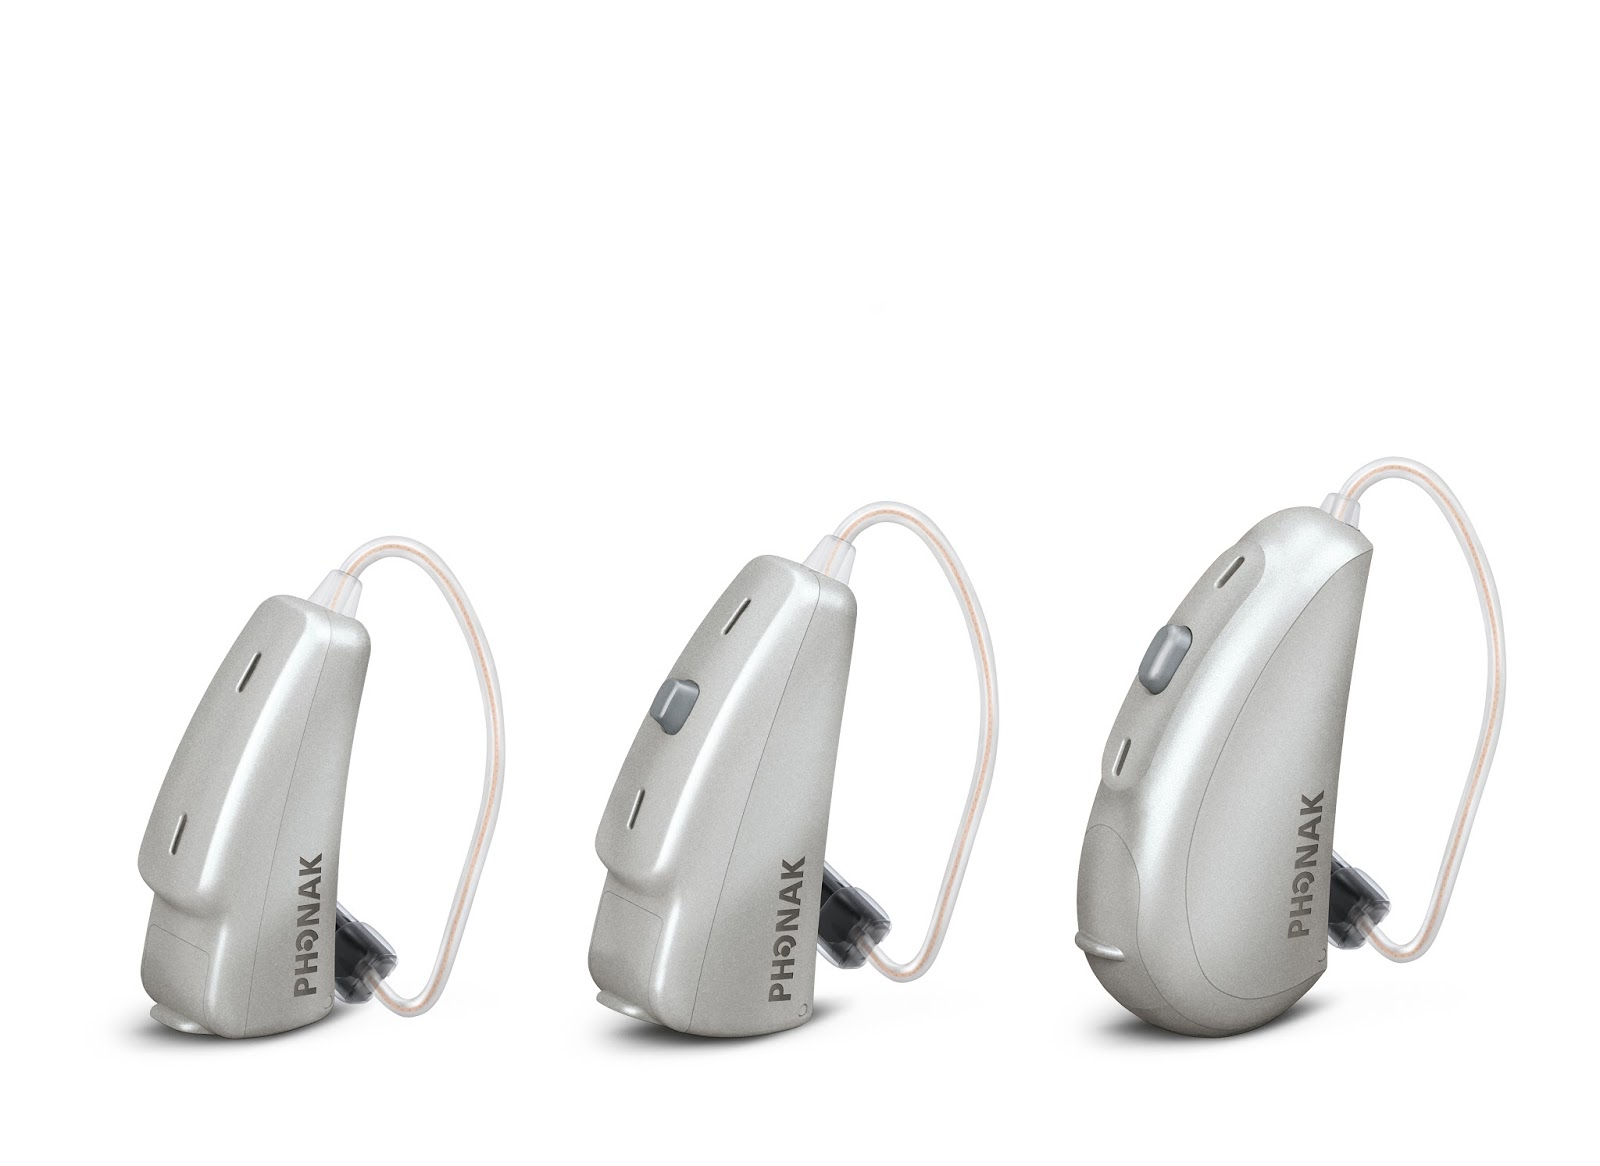 Phonak Audeo Q30